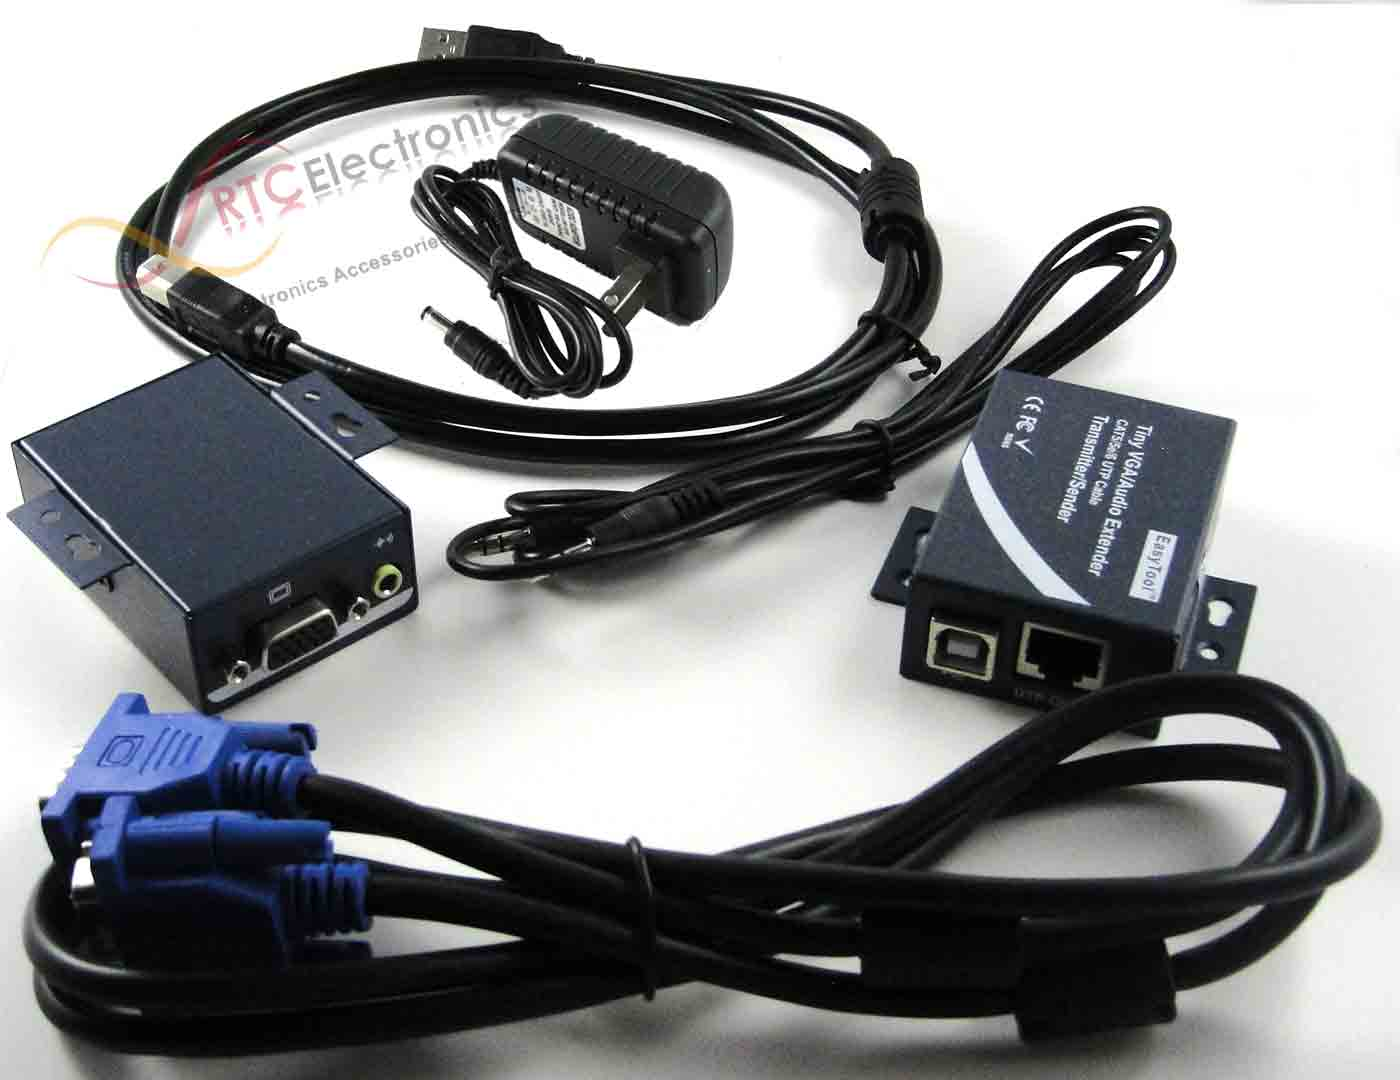 VGA Video Extender over Cat5e/CAT6 with Audio